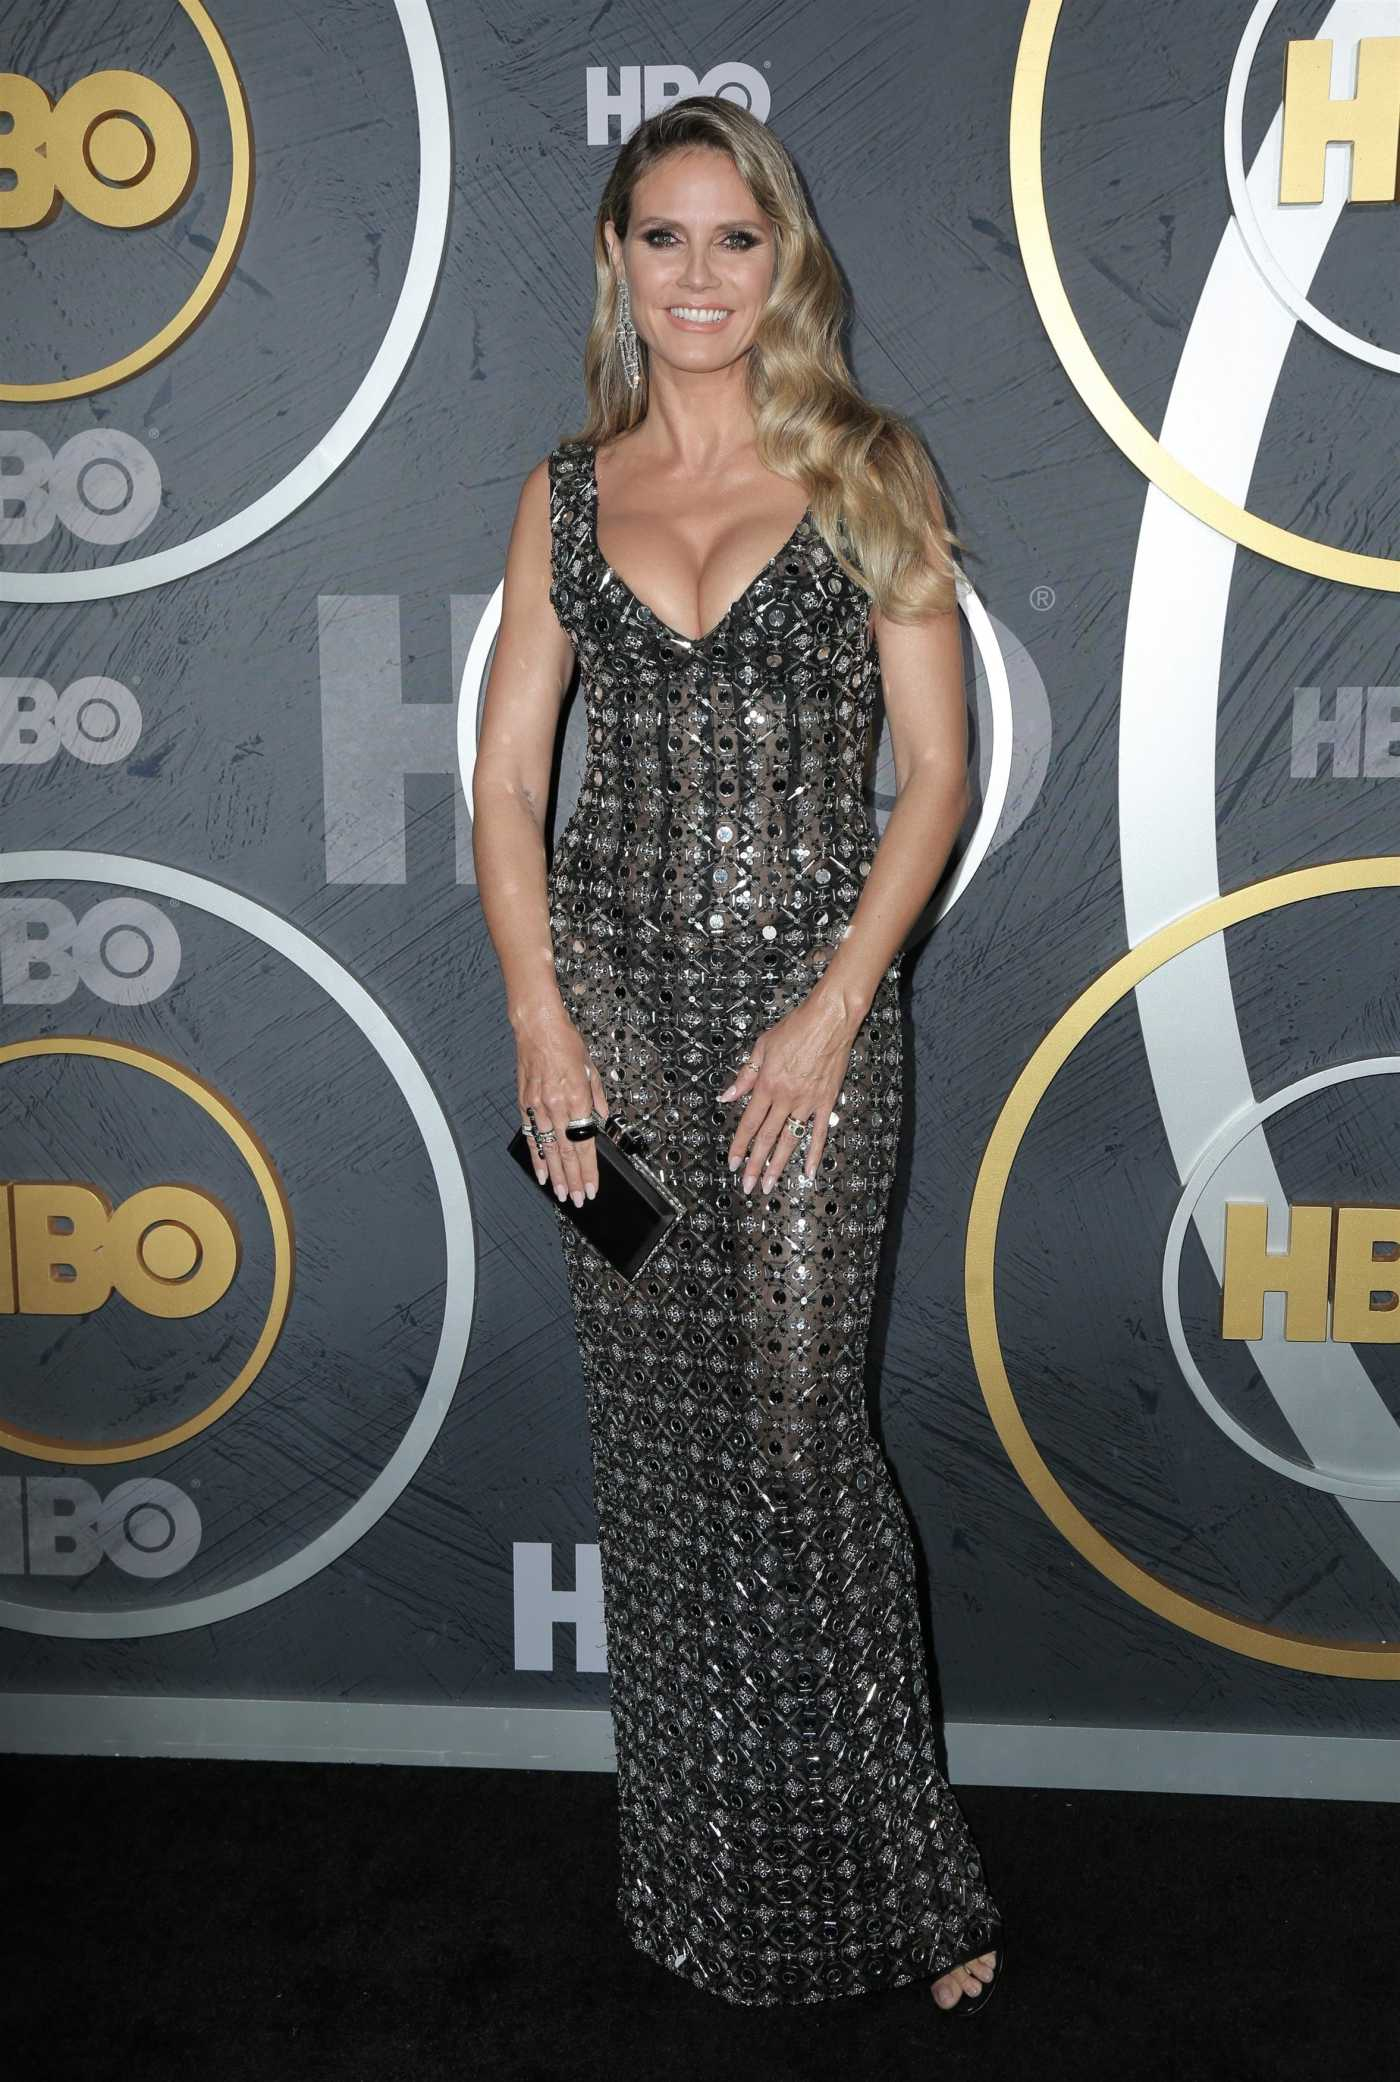 Heidi Klum Attends HBO's Official 2019 Emmy After Party in LA 09/22/2019